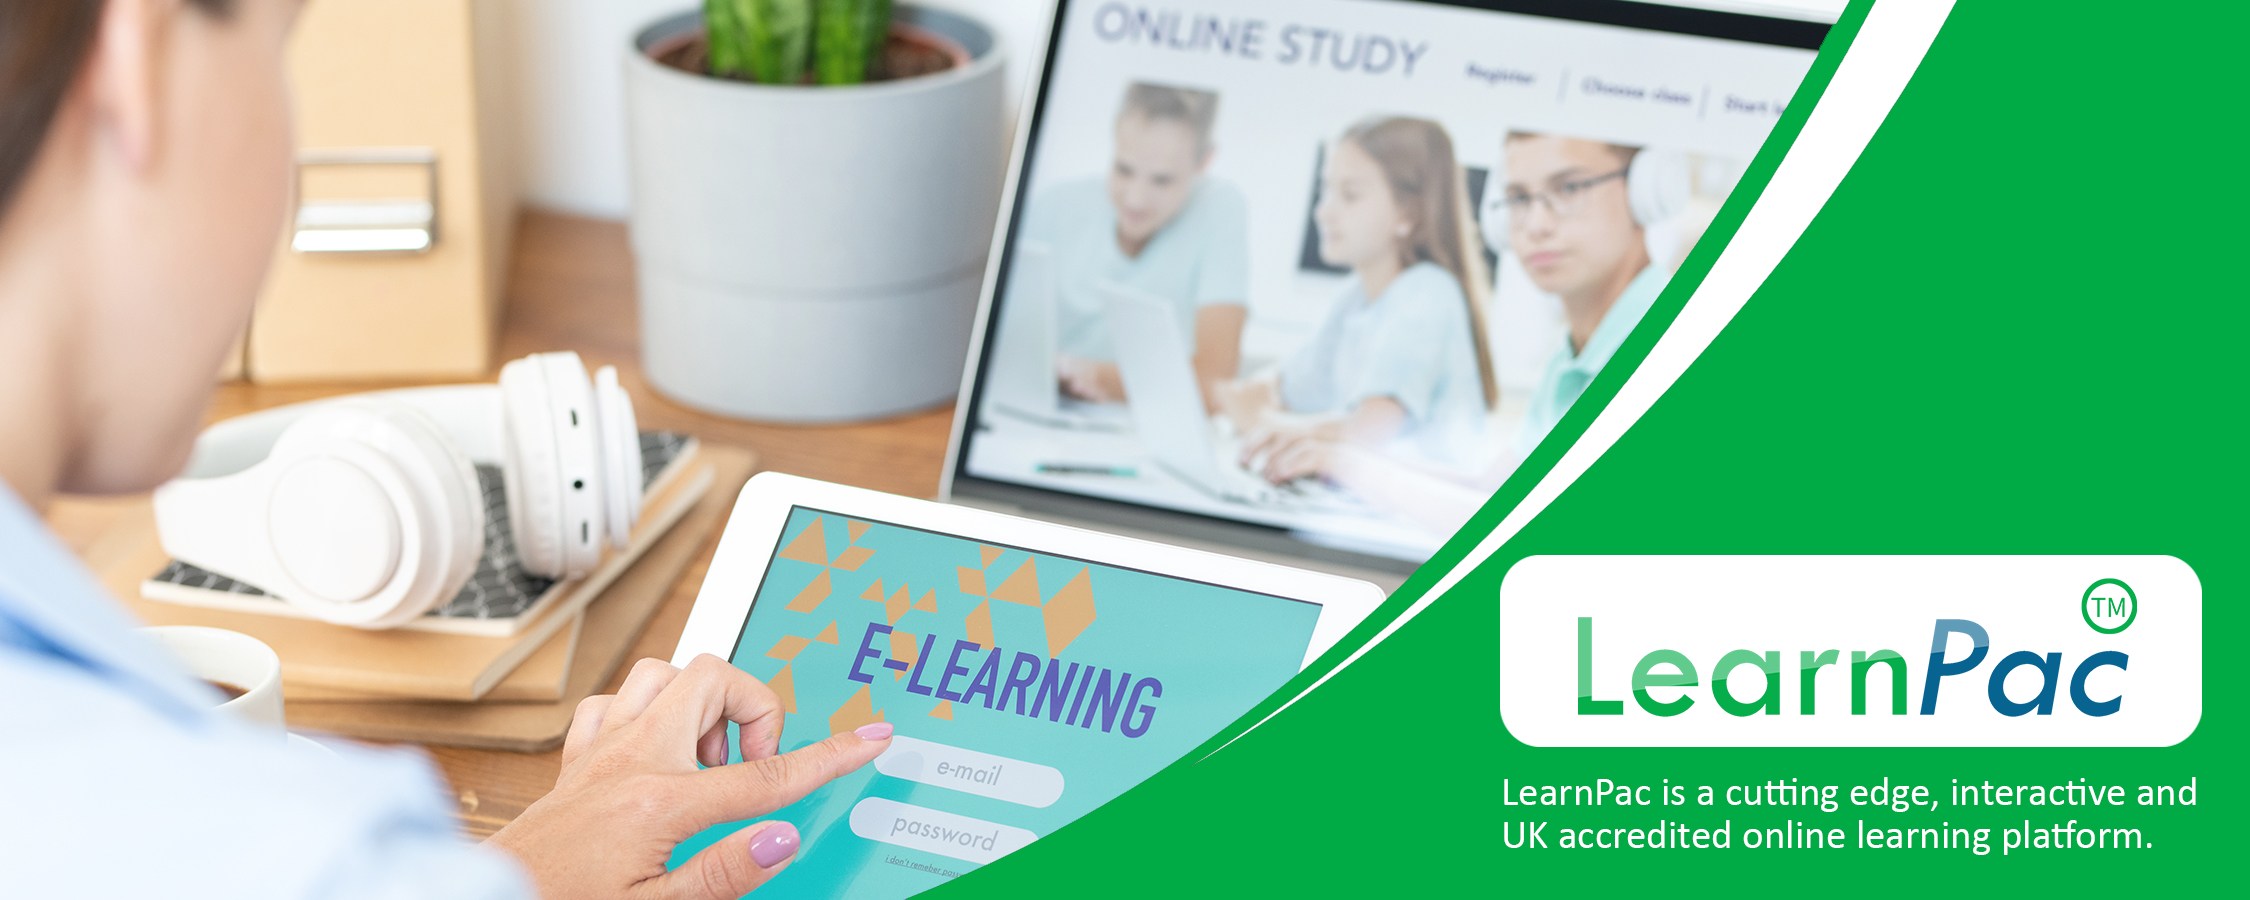 Health and Wellness at Work Training - Online Learning Courses - E-Learning Courses - LearnPac Systems UK -